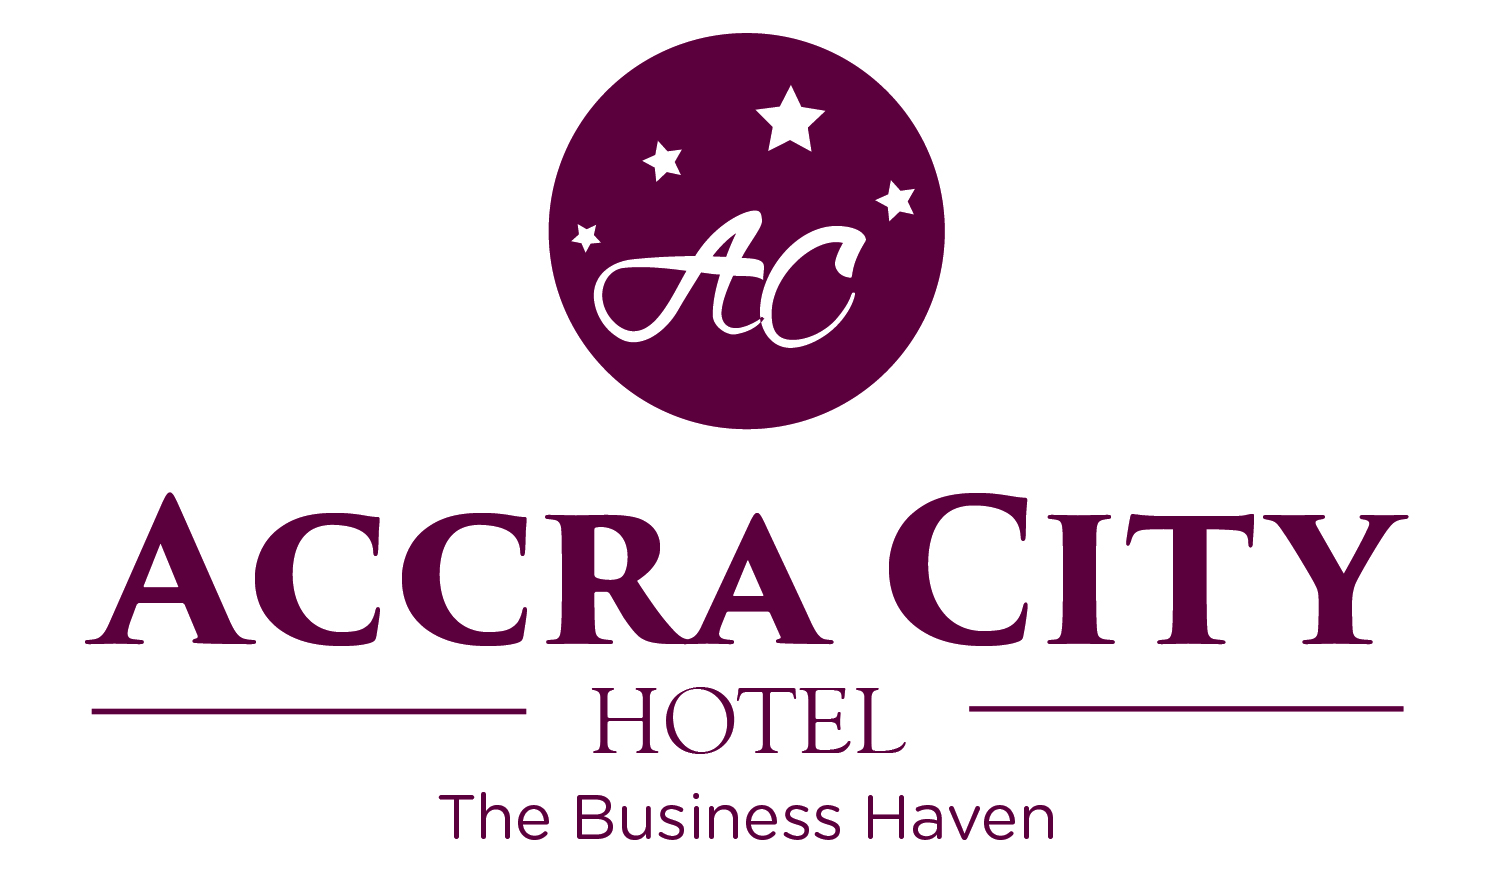 accra city hotels LOGO FINAL-02 (2)